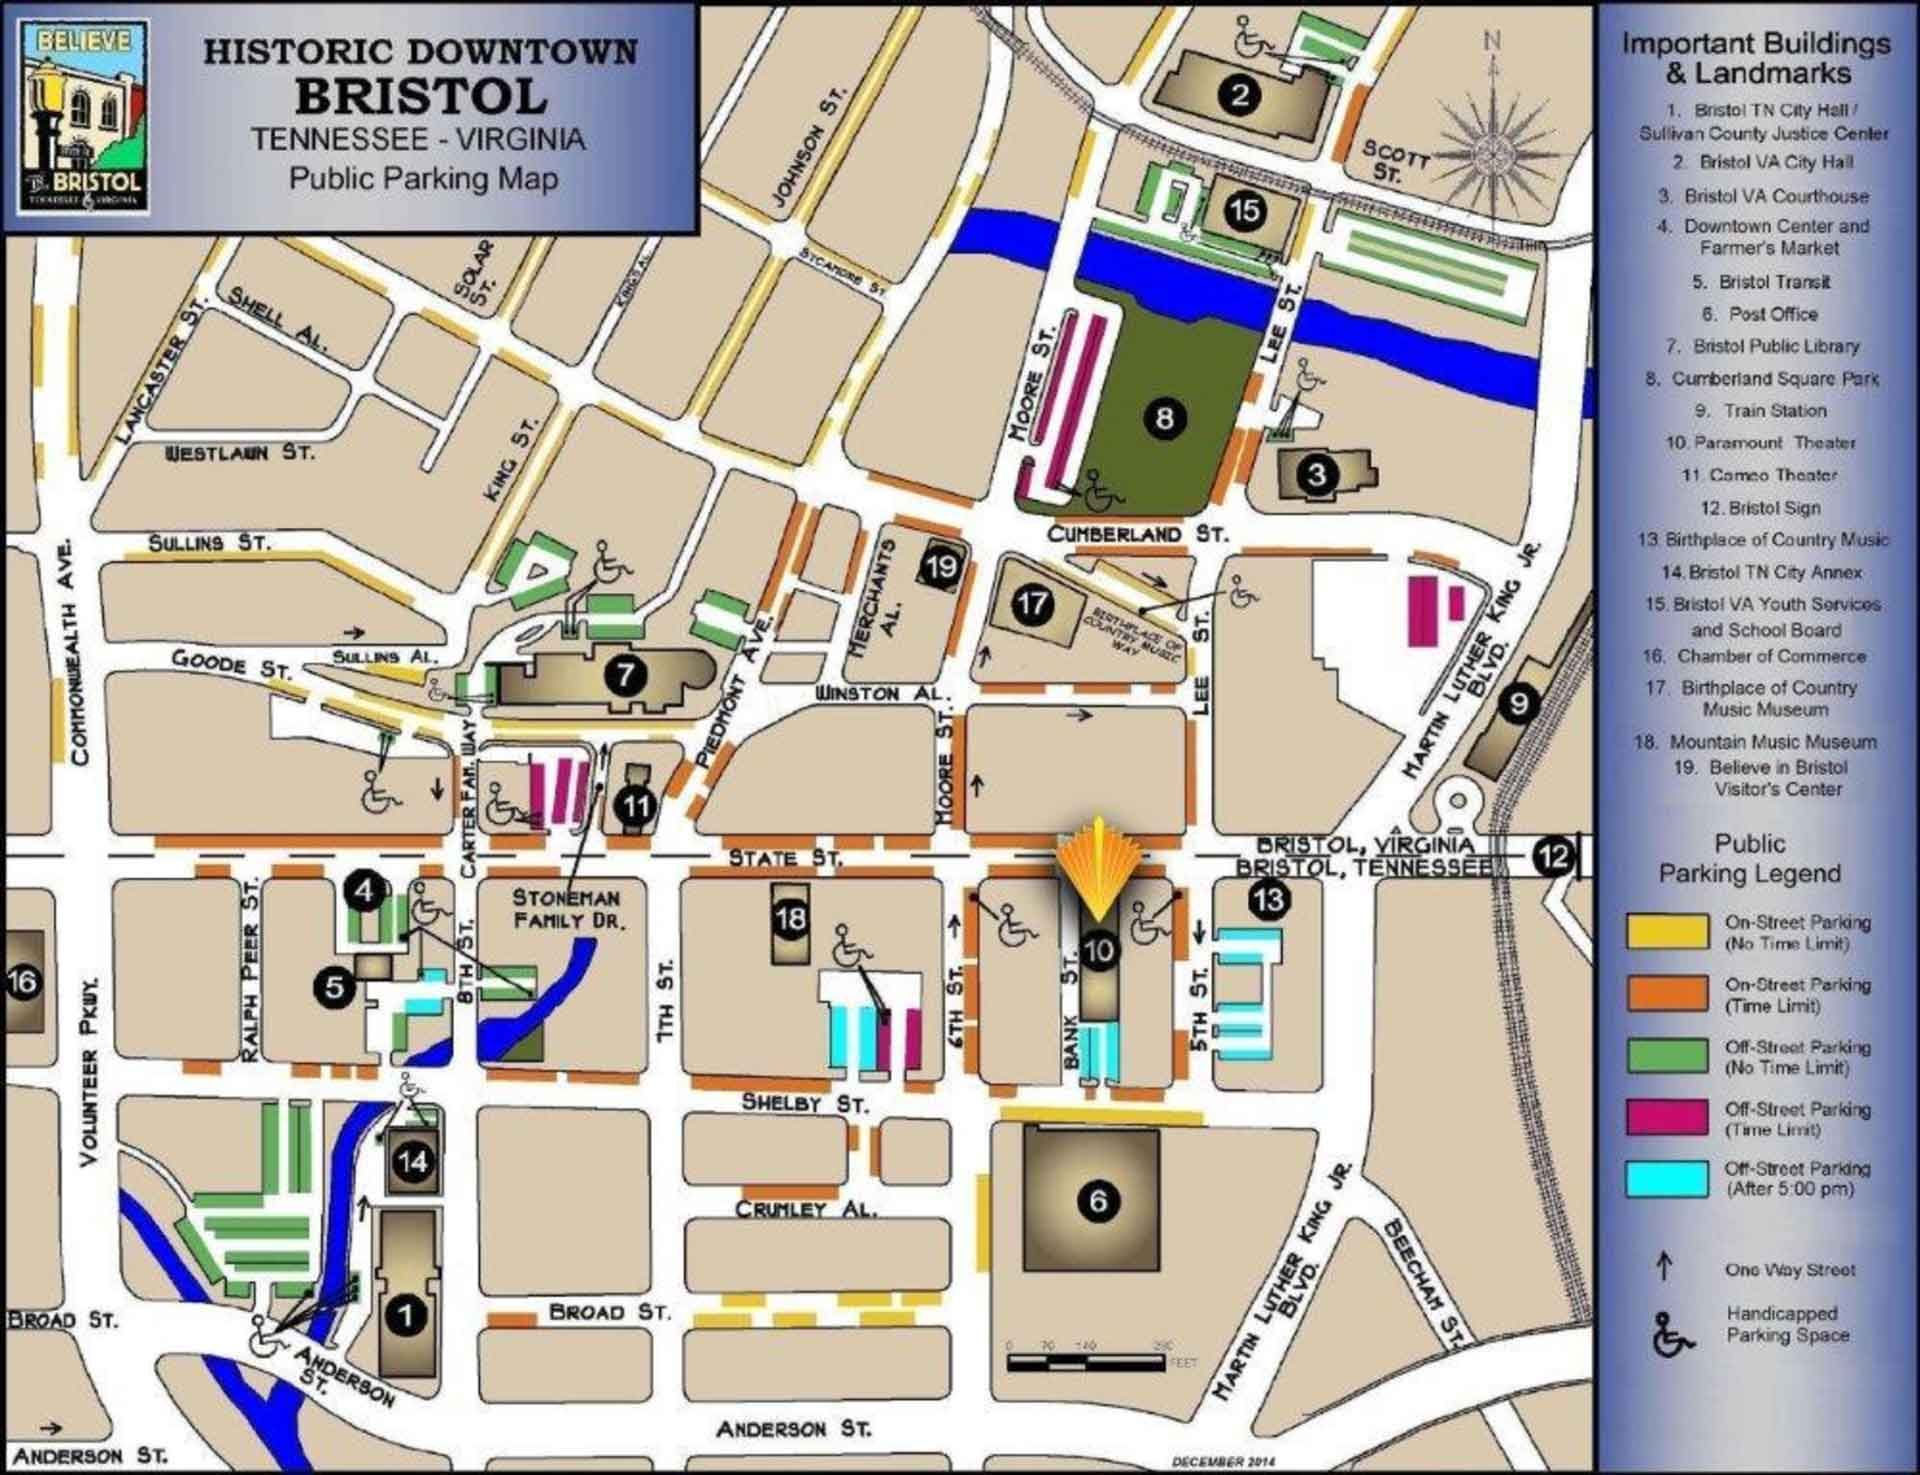 A map of historical downtown Bristol shows available parking, attractions, important buildings and landmarks.